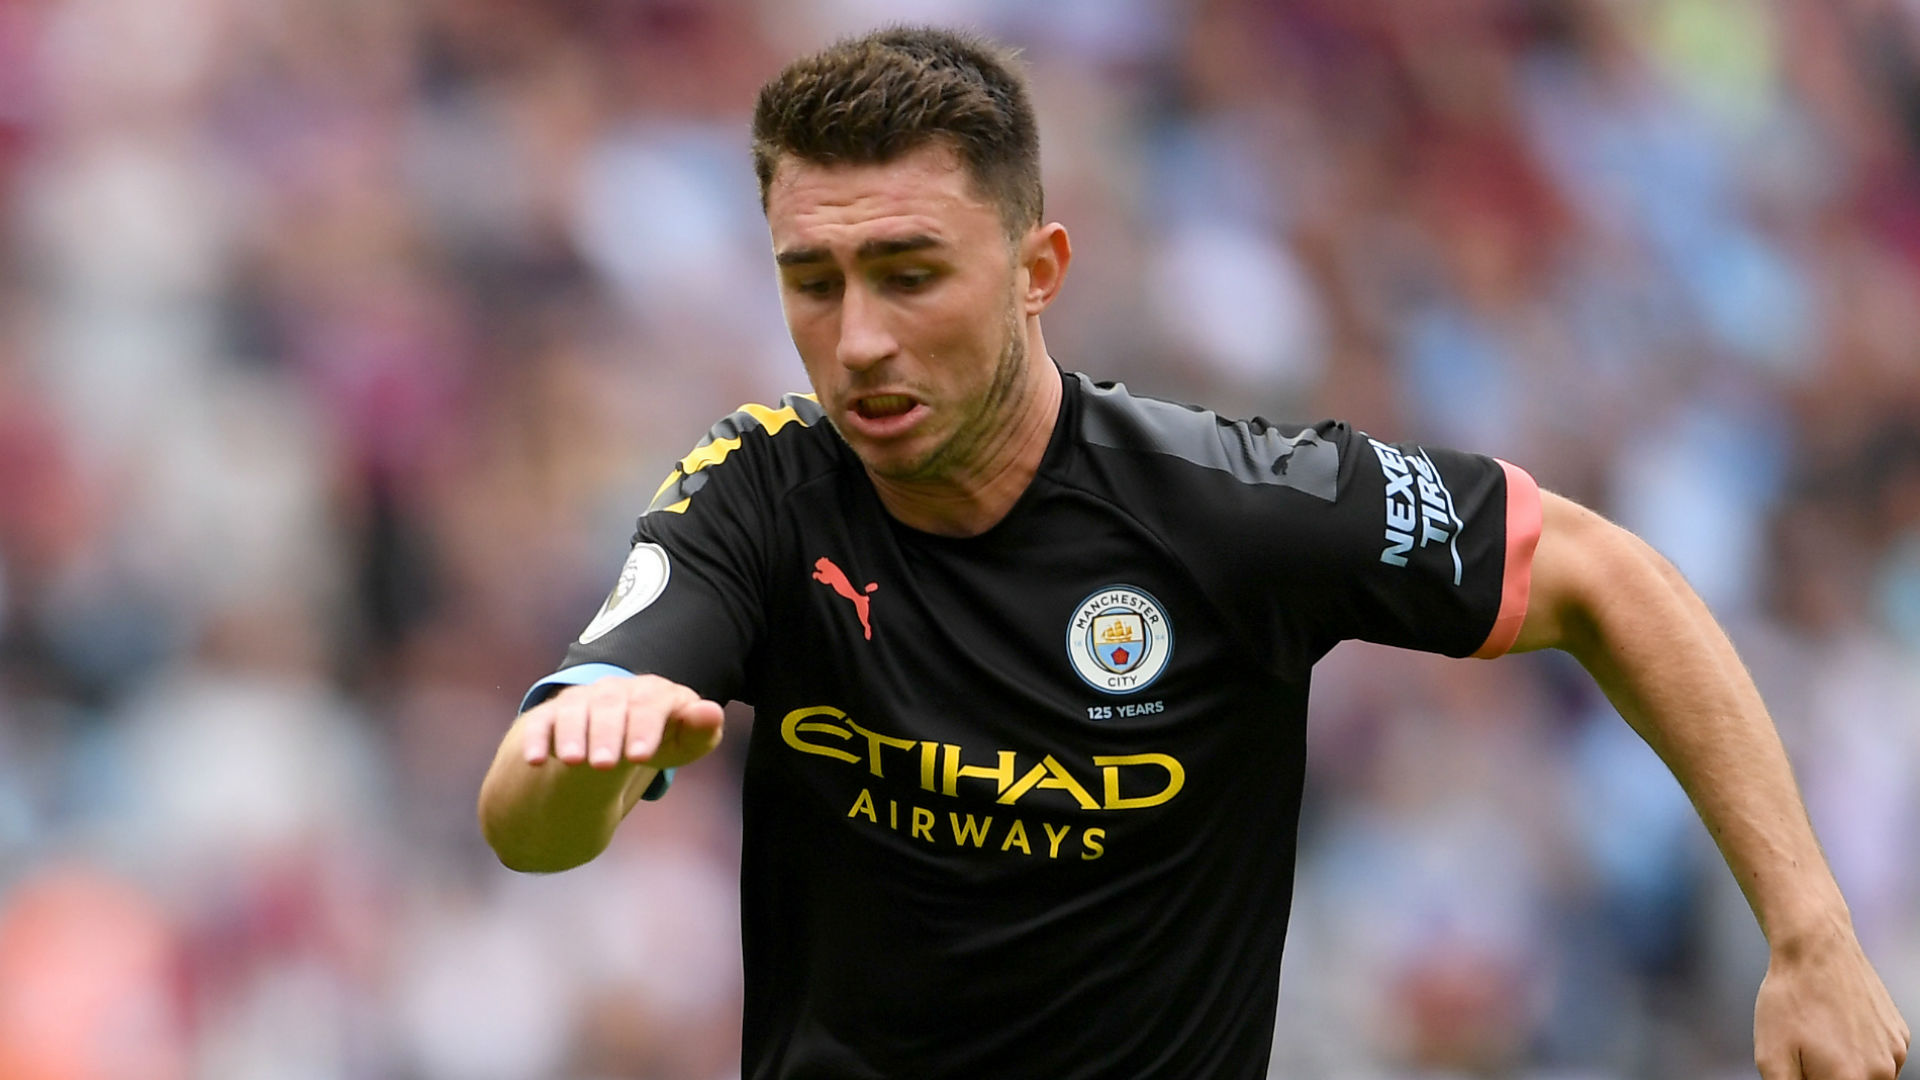 Man City centre-back Laporte returns from knee injury to start